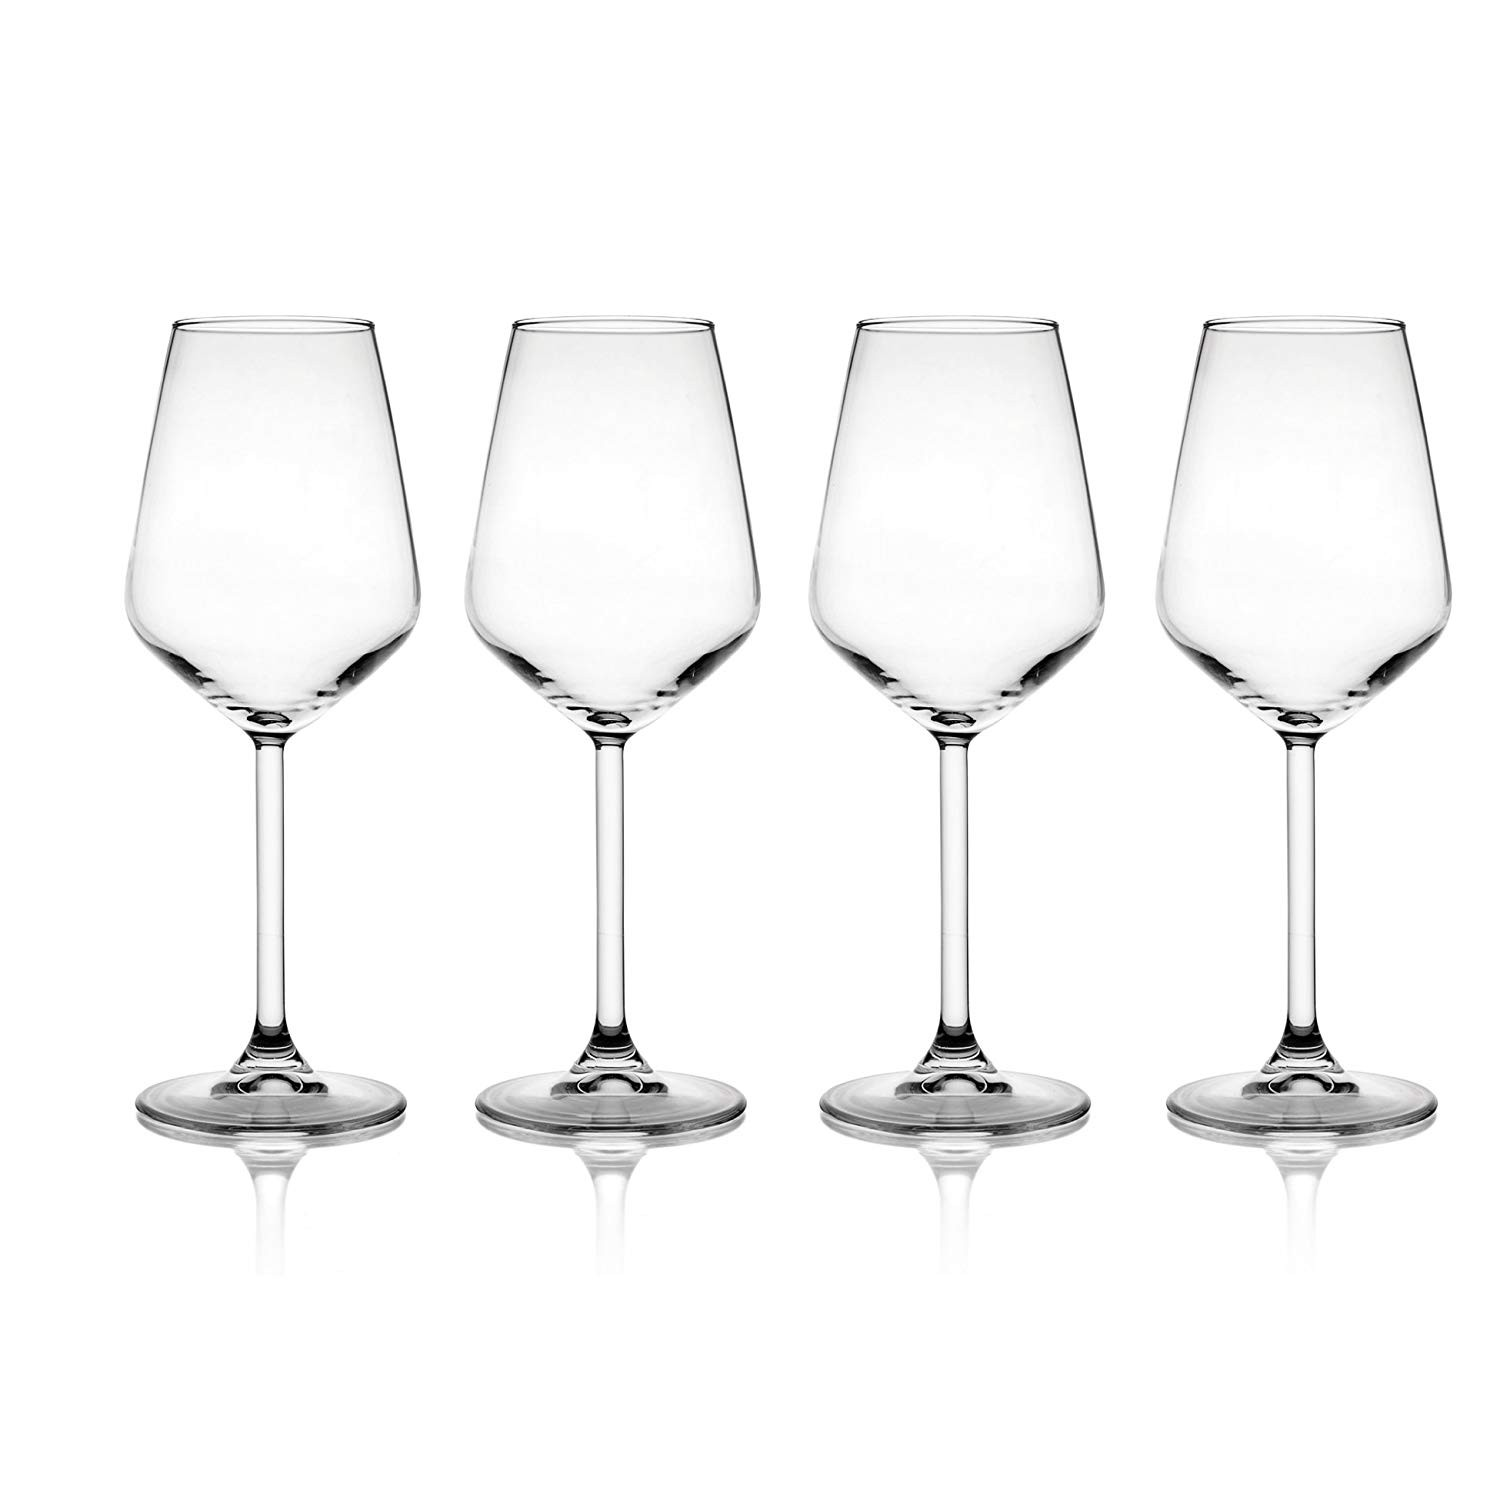 Fitz and Floyd Chateau Set of 4 Wine Goblets